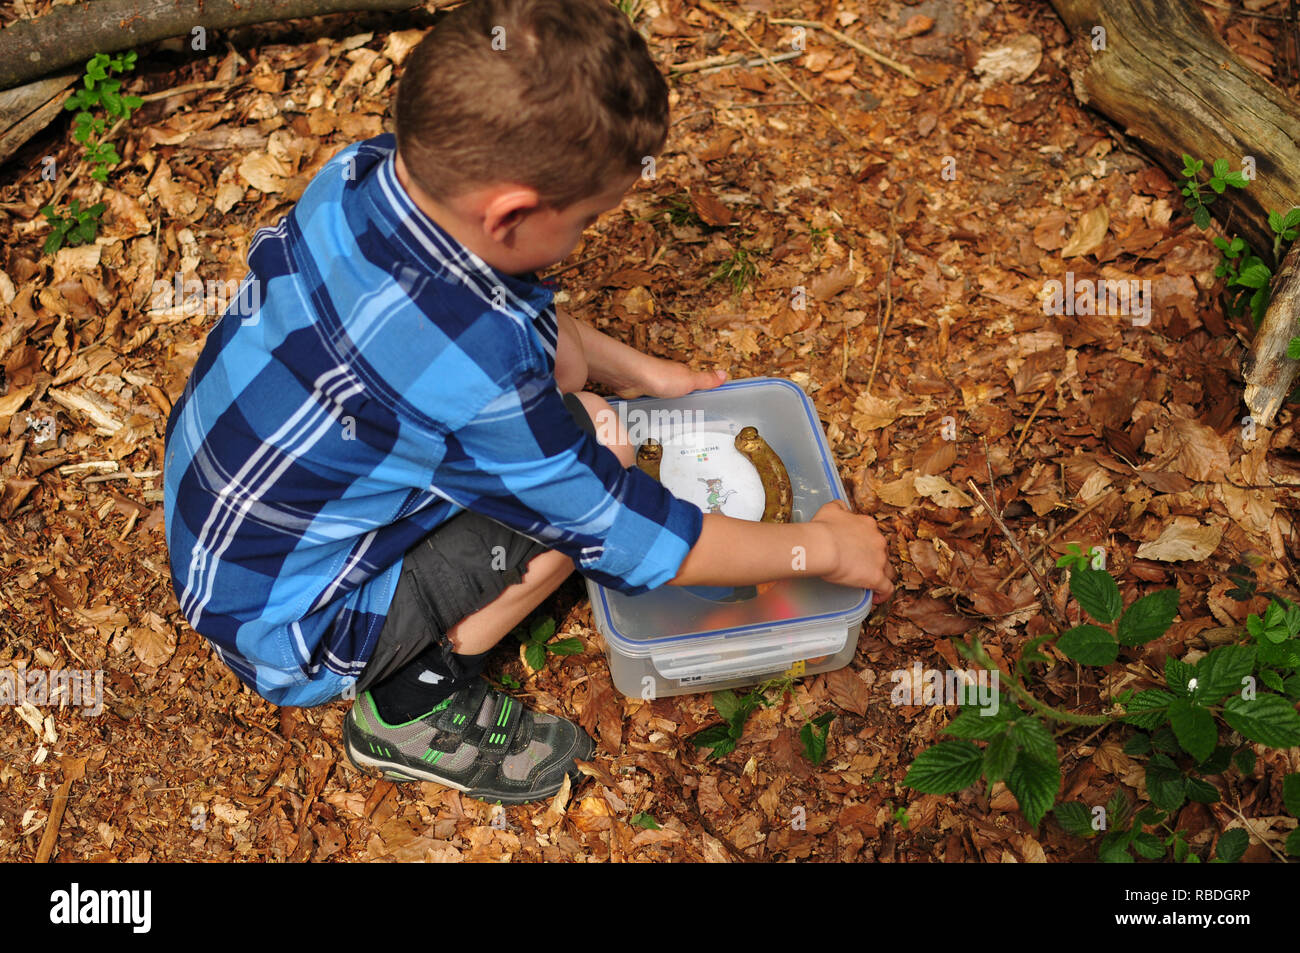 geocaching boy finds a well camouflaged cache in the forest - Stock Image